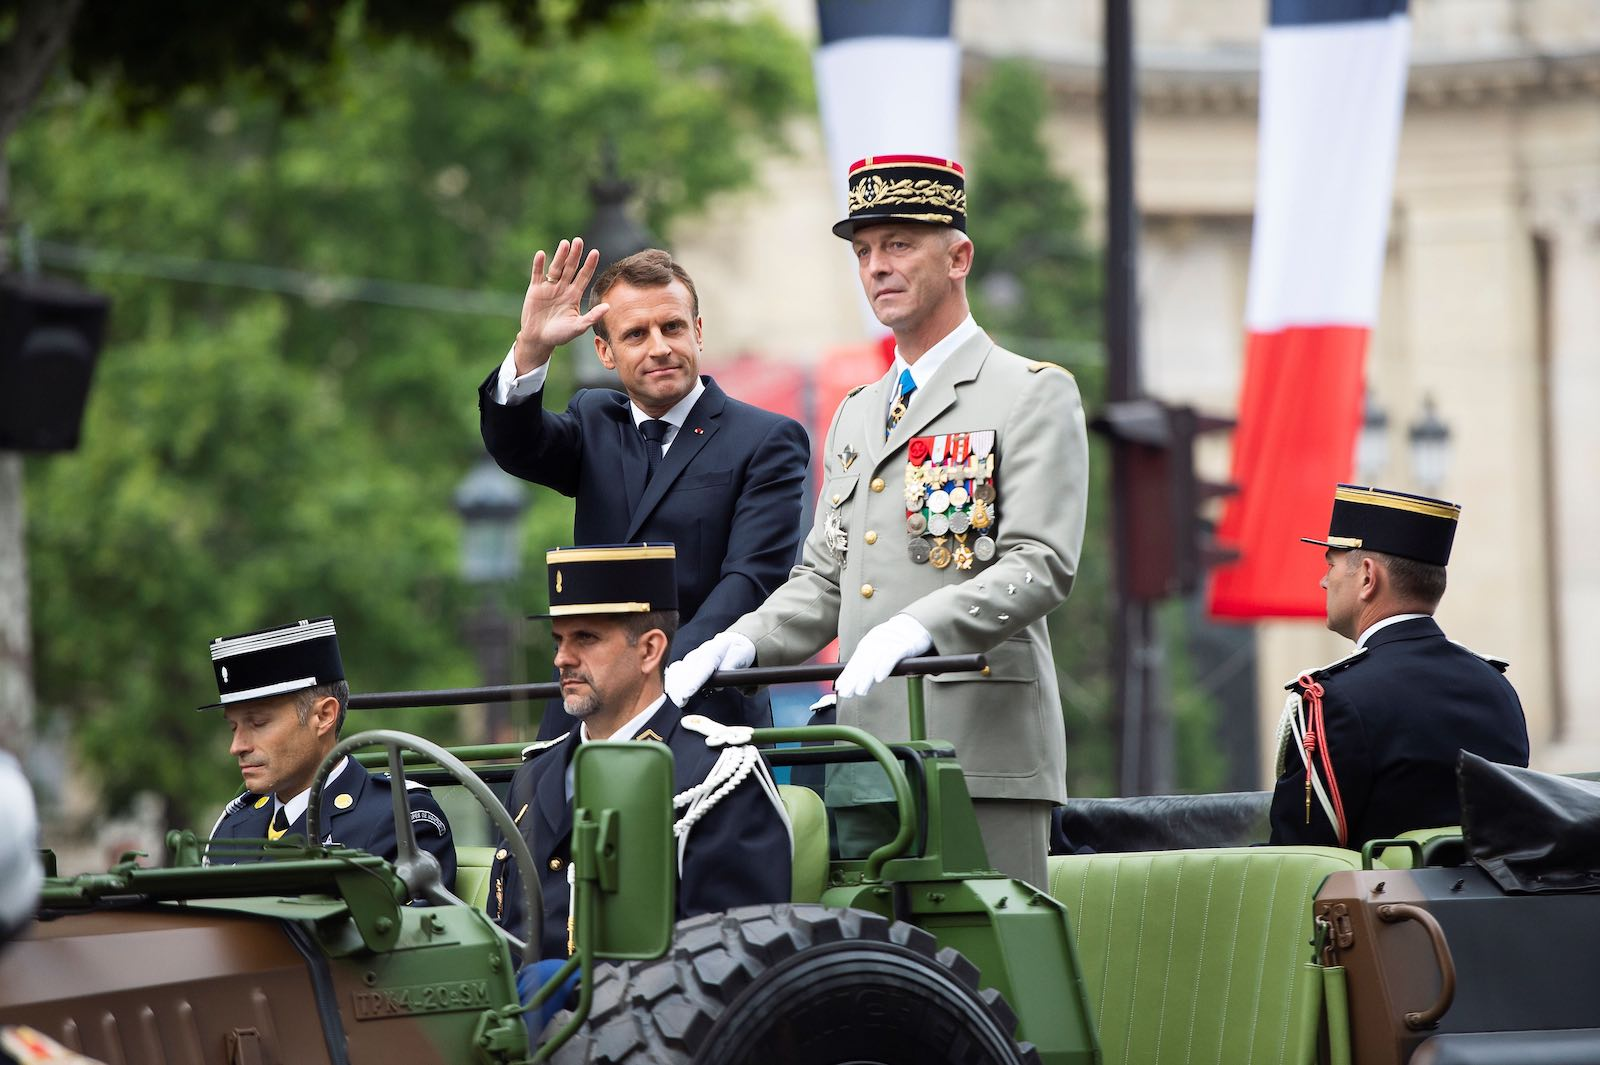 France's President Emmanuel Macron reviews the troops during the annual Bastille Day military parade in Paris this month (Photo: Eliot Blondet via Getty)